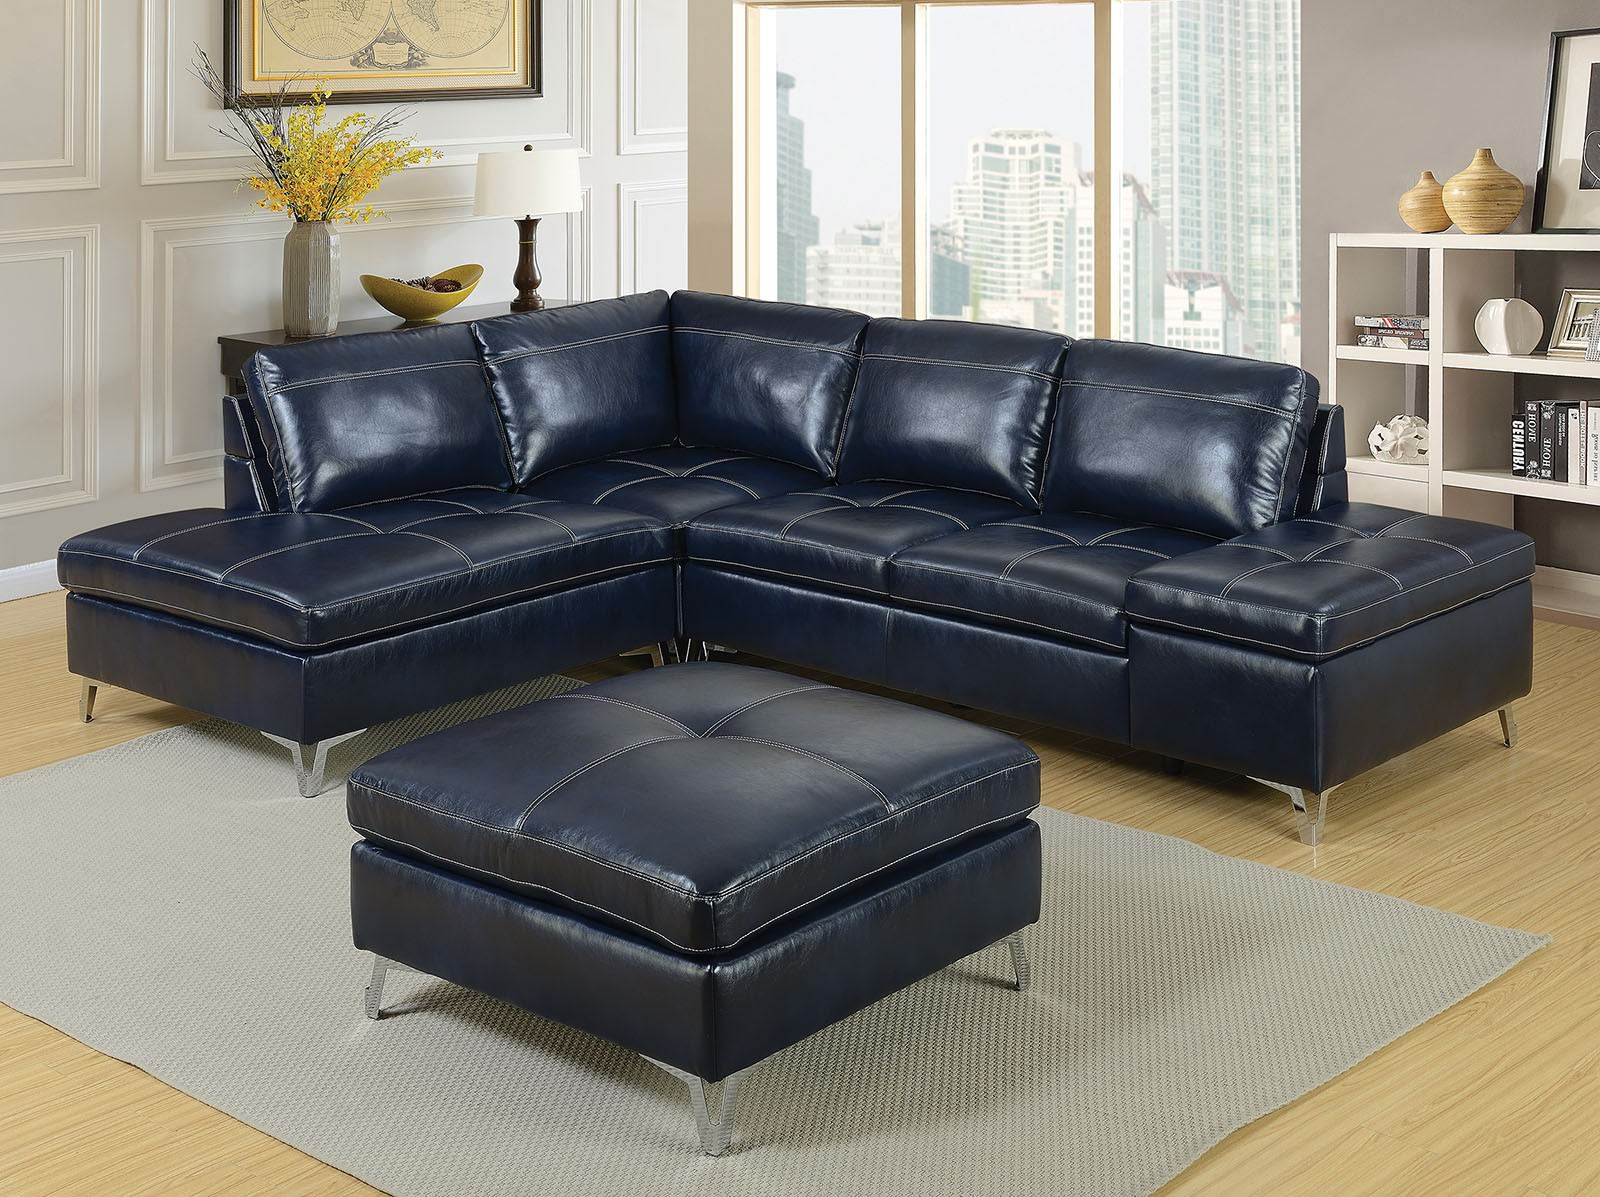 Tatum Dark Grey 2 Piece Sectionals With Laf Chaise For Well Known Leather Sectionals (View 15 of 20)